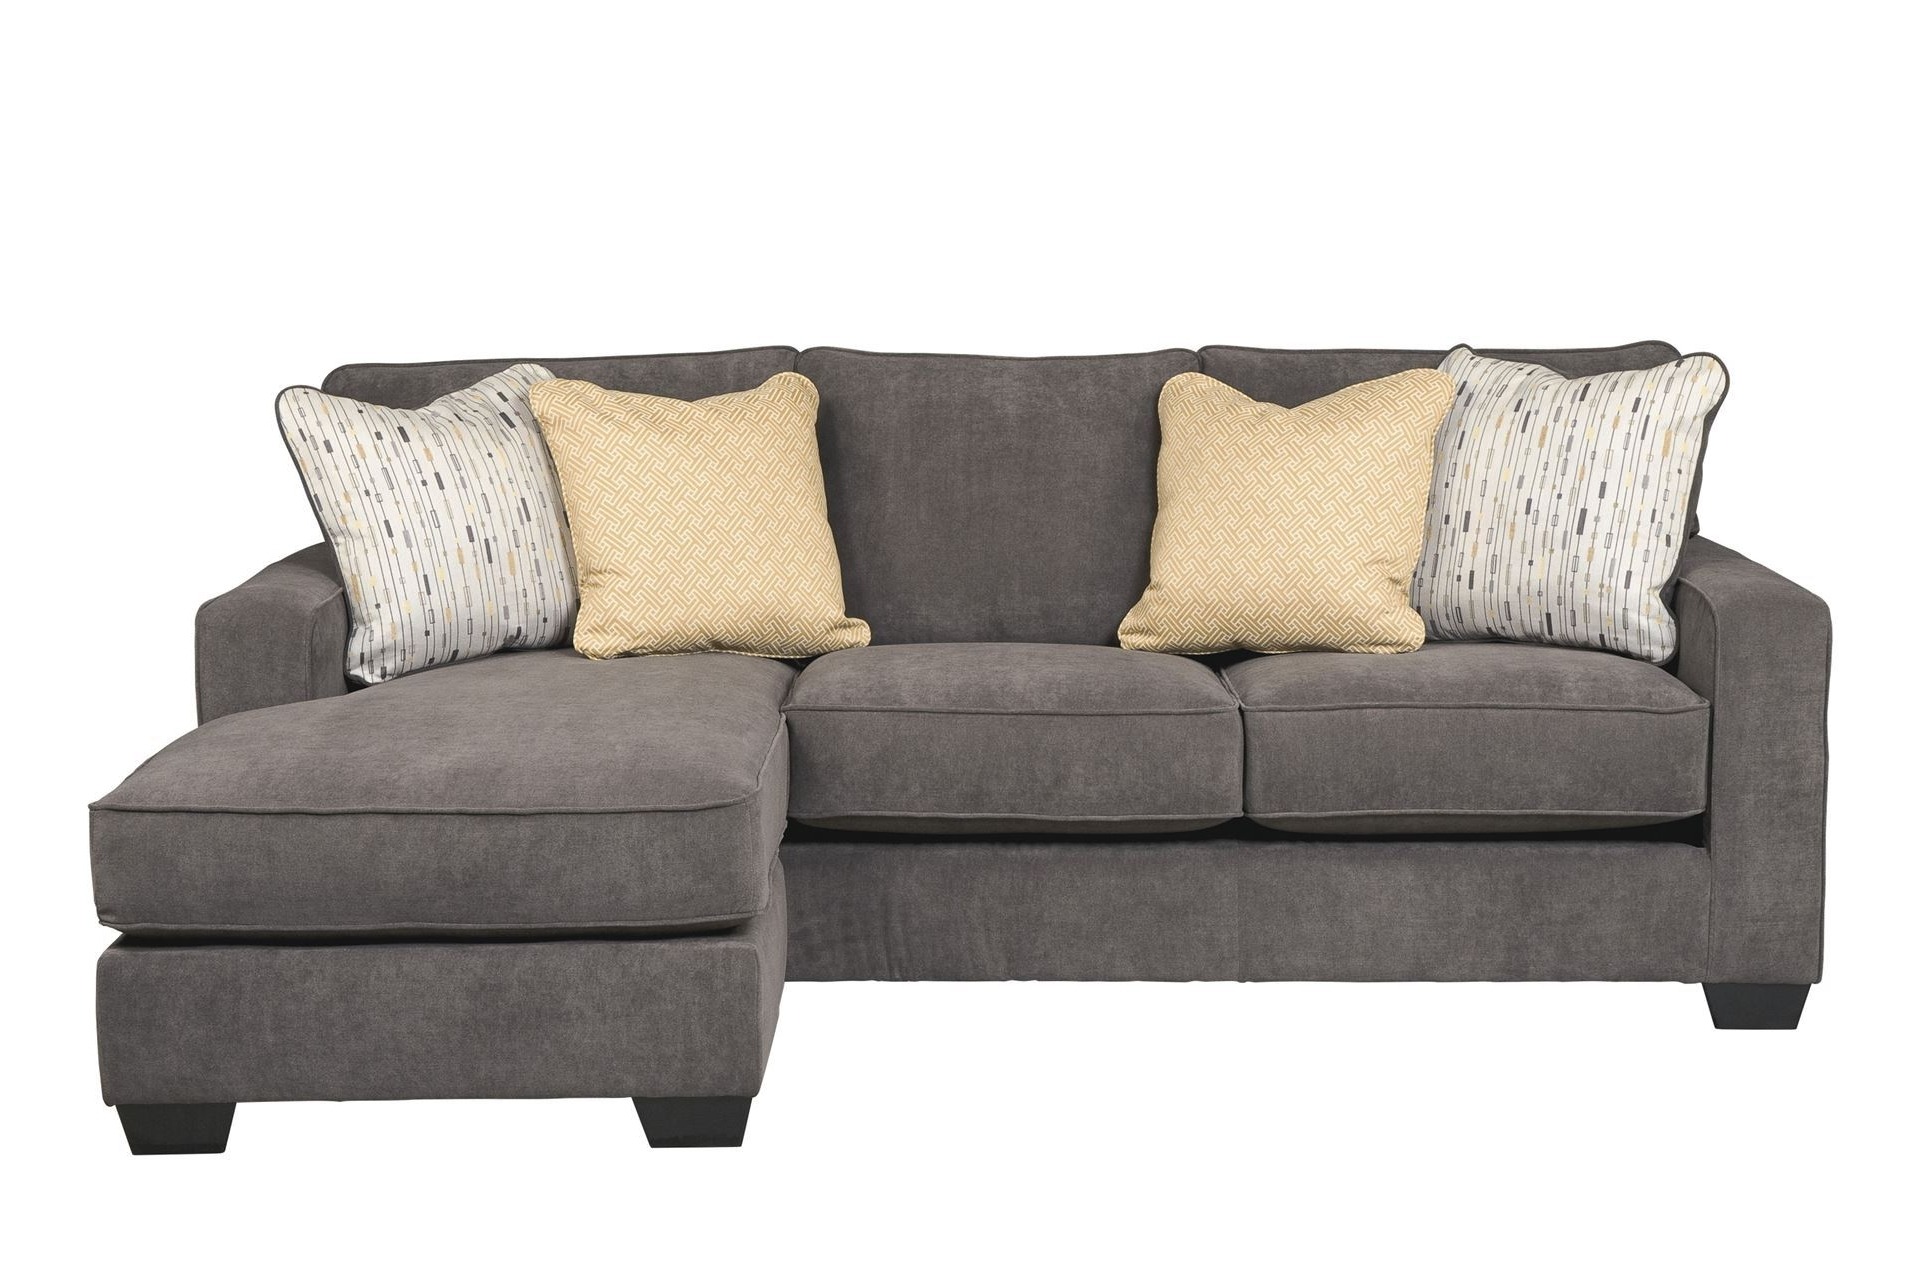 Sofa ~ Small Grey Sofa Tidafors Two Seat Sofa Hensta Grey 0240067 Within Newest Gray Chaise Sofas (View 4 of 15)